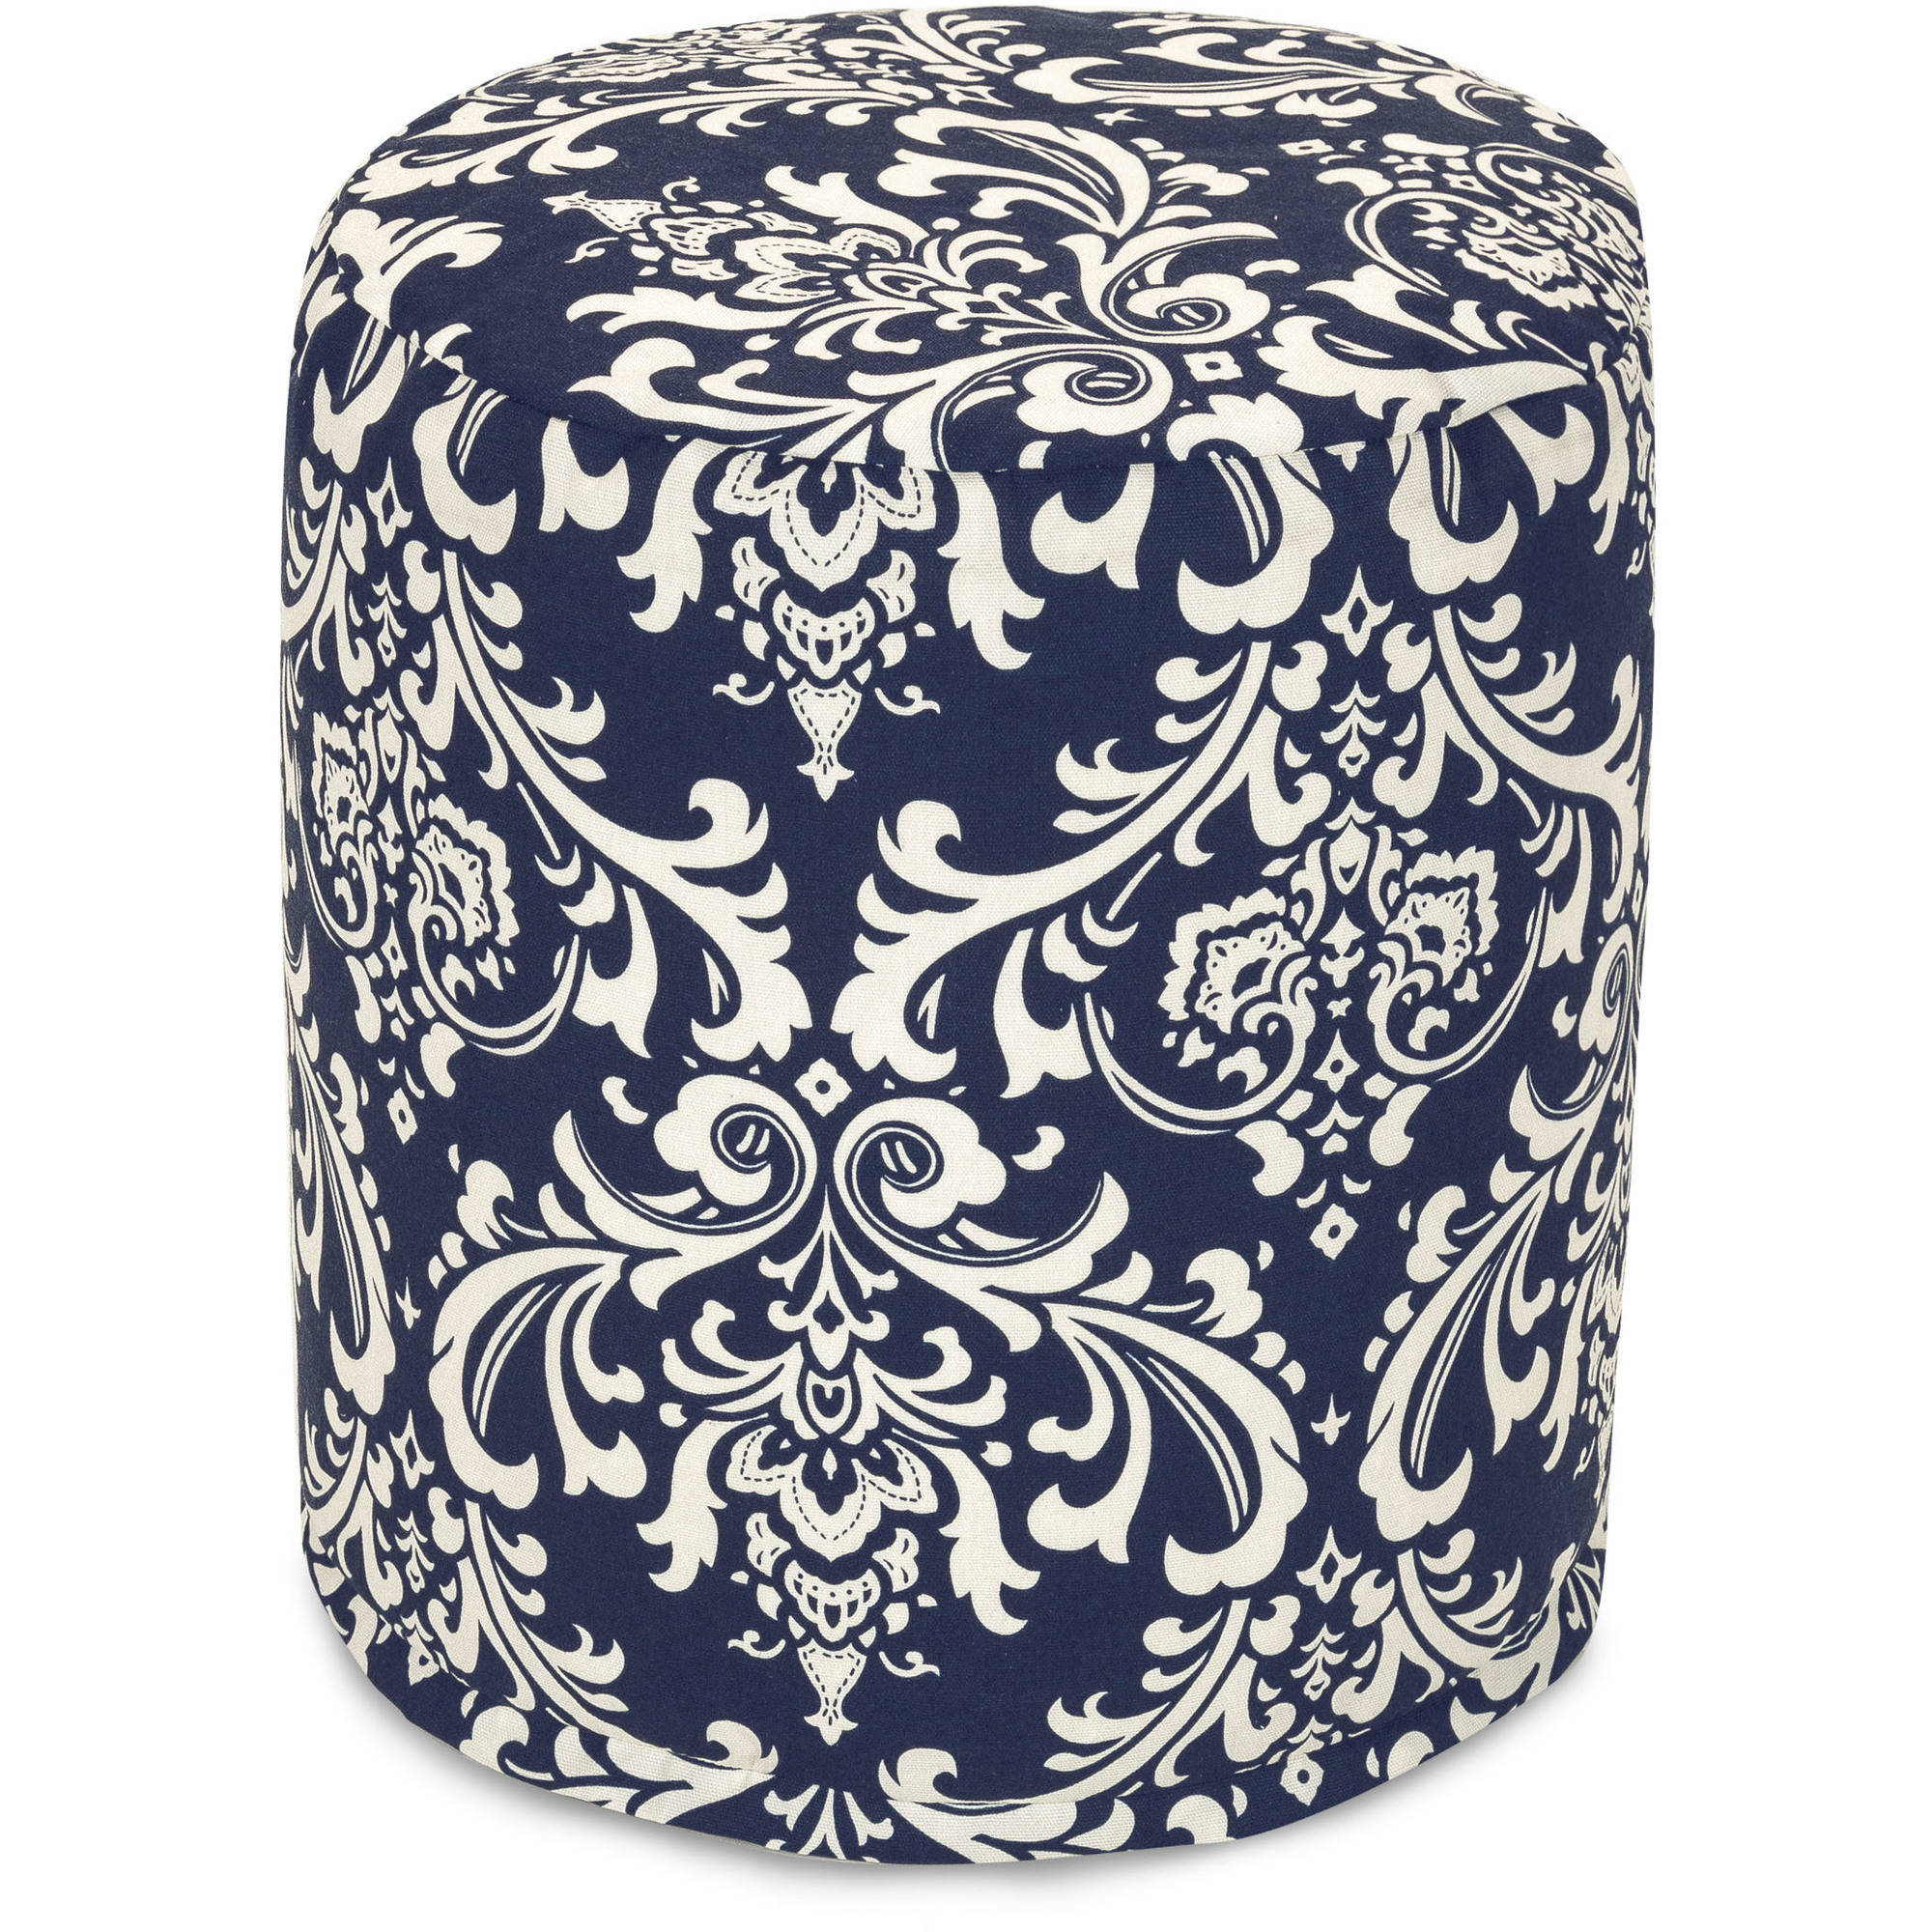 Majestic Home Goods Navy Blue French Quarter Small Pouf, Indoor/Outdoor